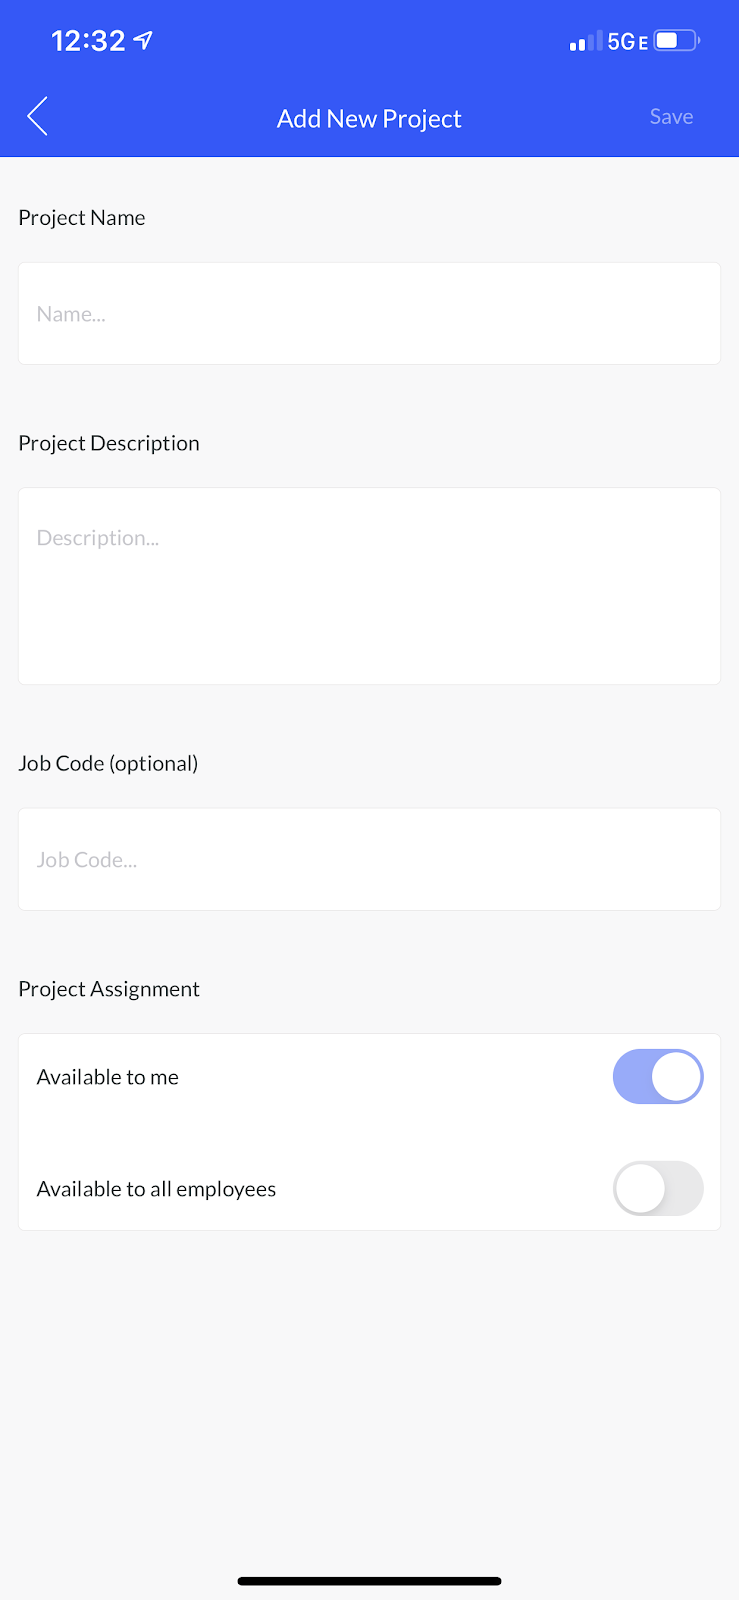 Screenshot showing the Add New Project screen